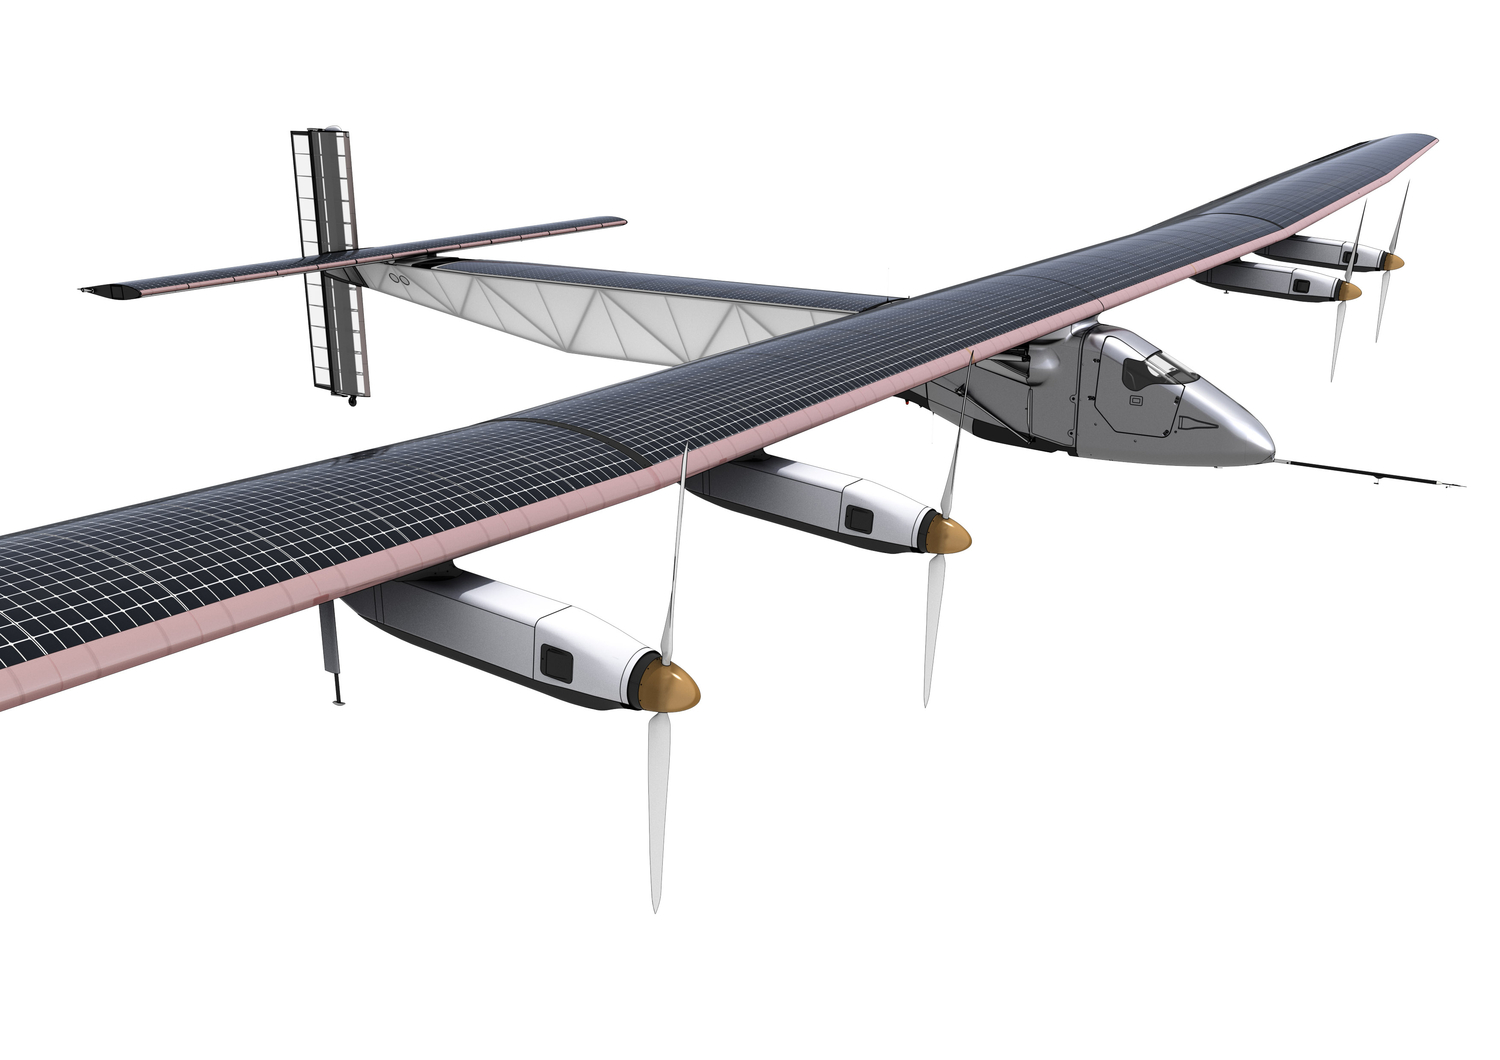 The World's First Solar Powered Plane Takes Flight